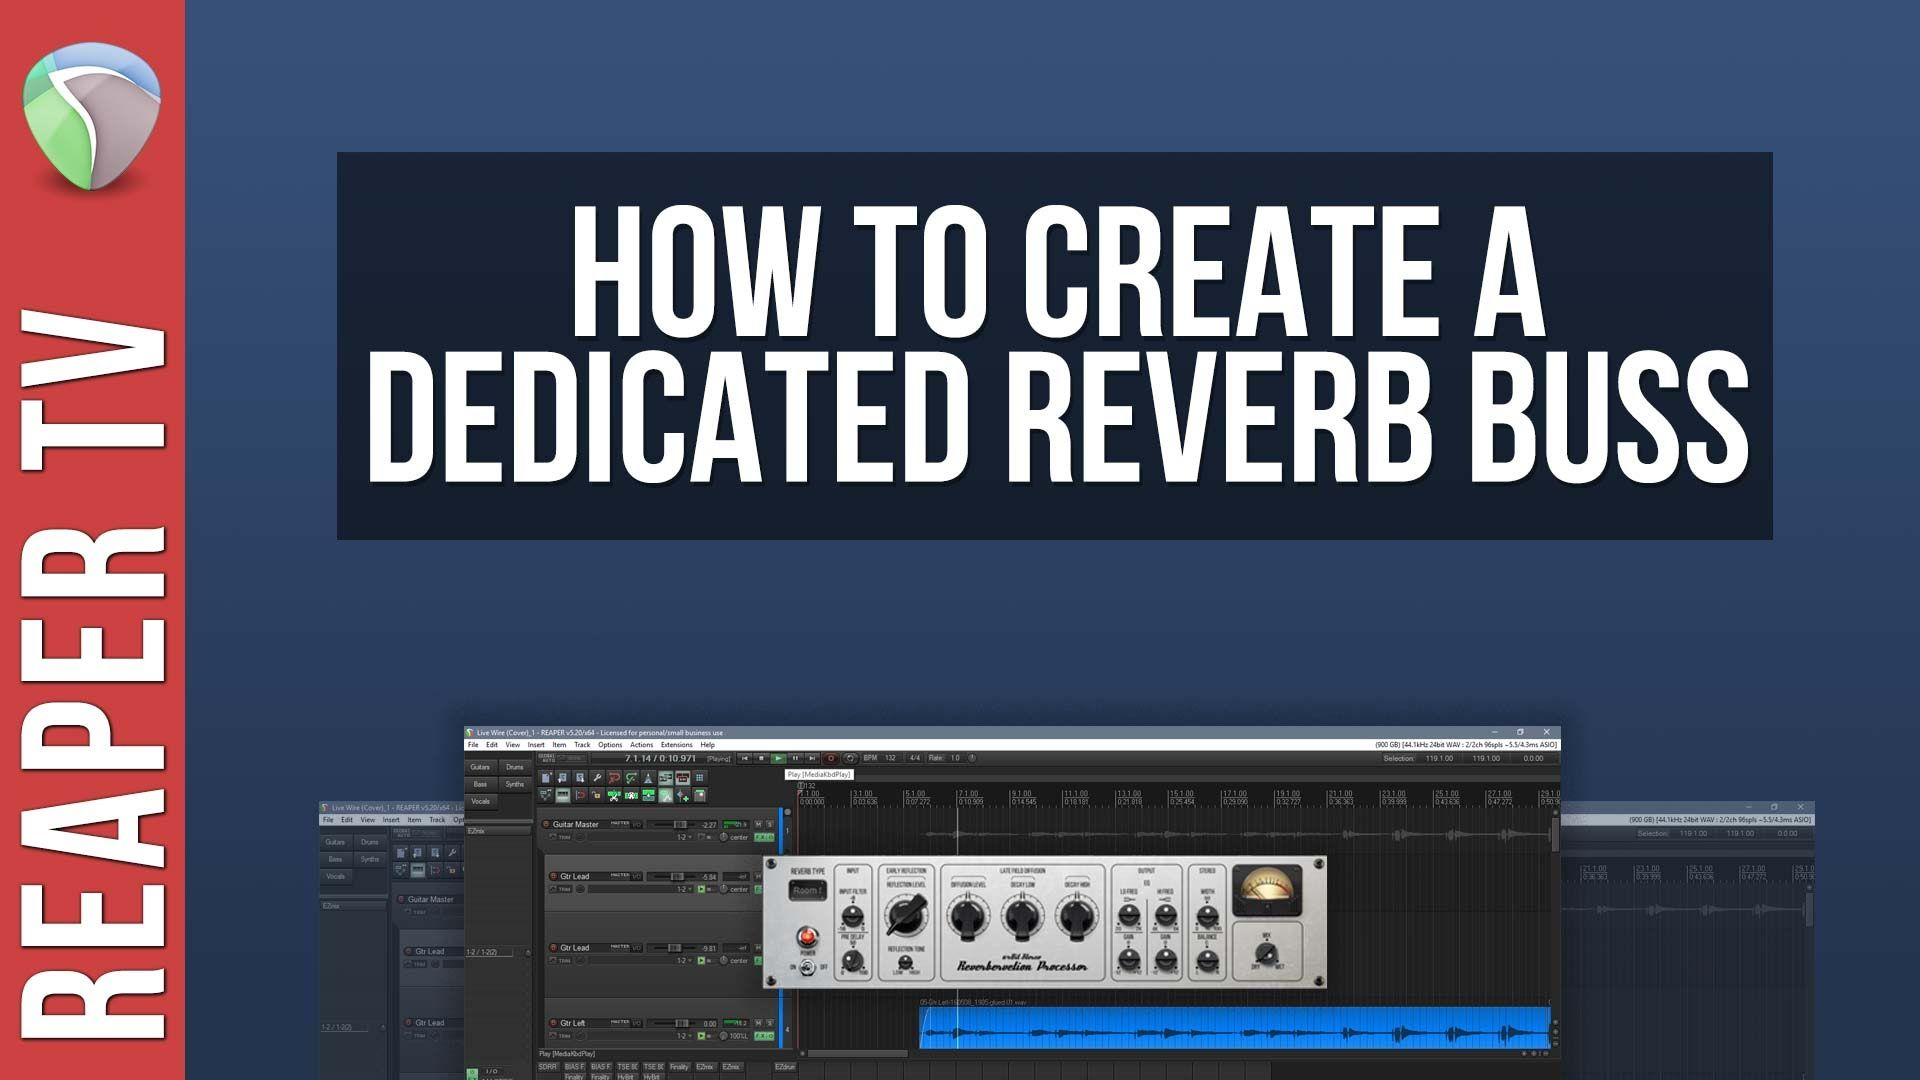 How To Set Up a Dedicated Reverb Buss in Reaper DAW | DAW in